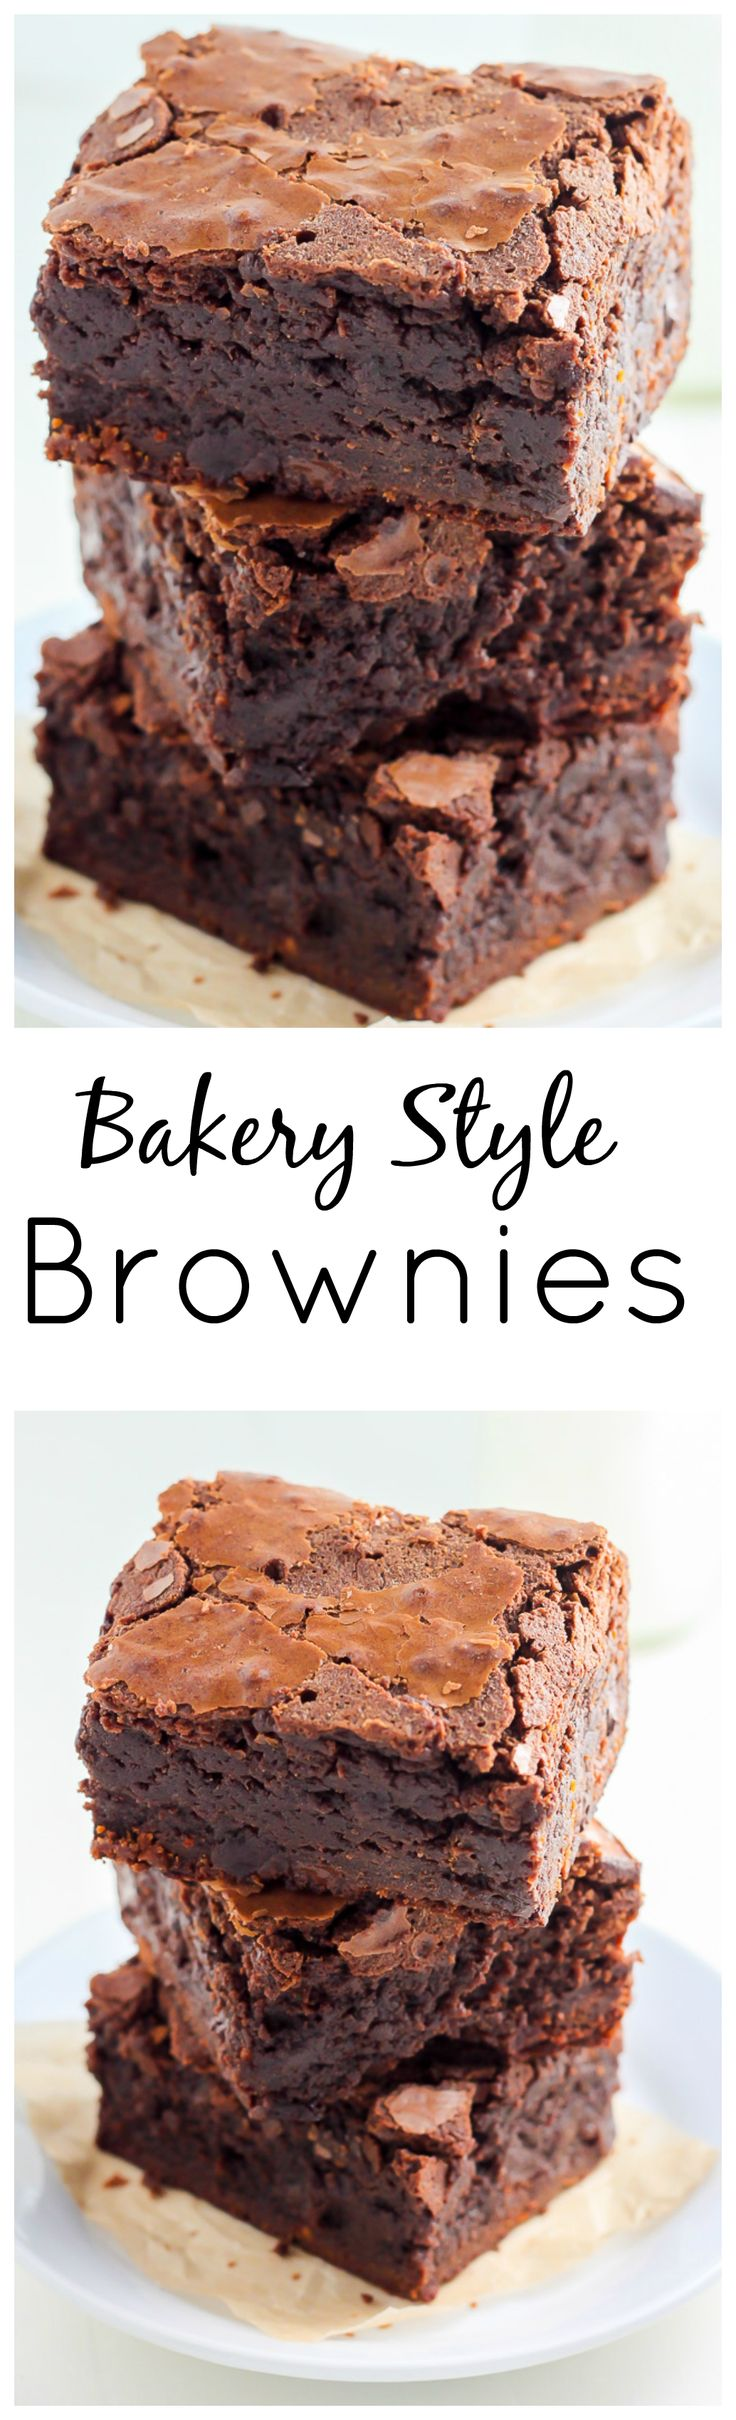 25+ best Baking brownies ideas on Pinterest | Brownies, Fudgy ...